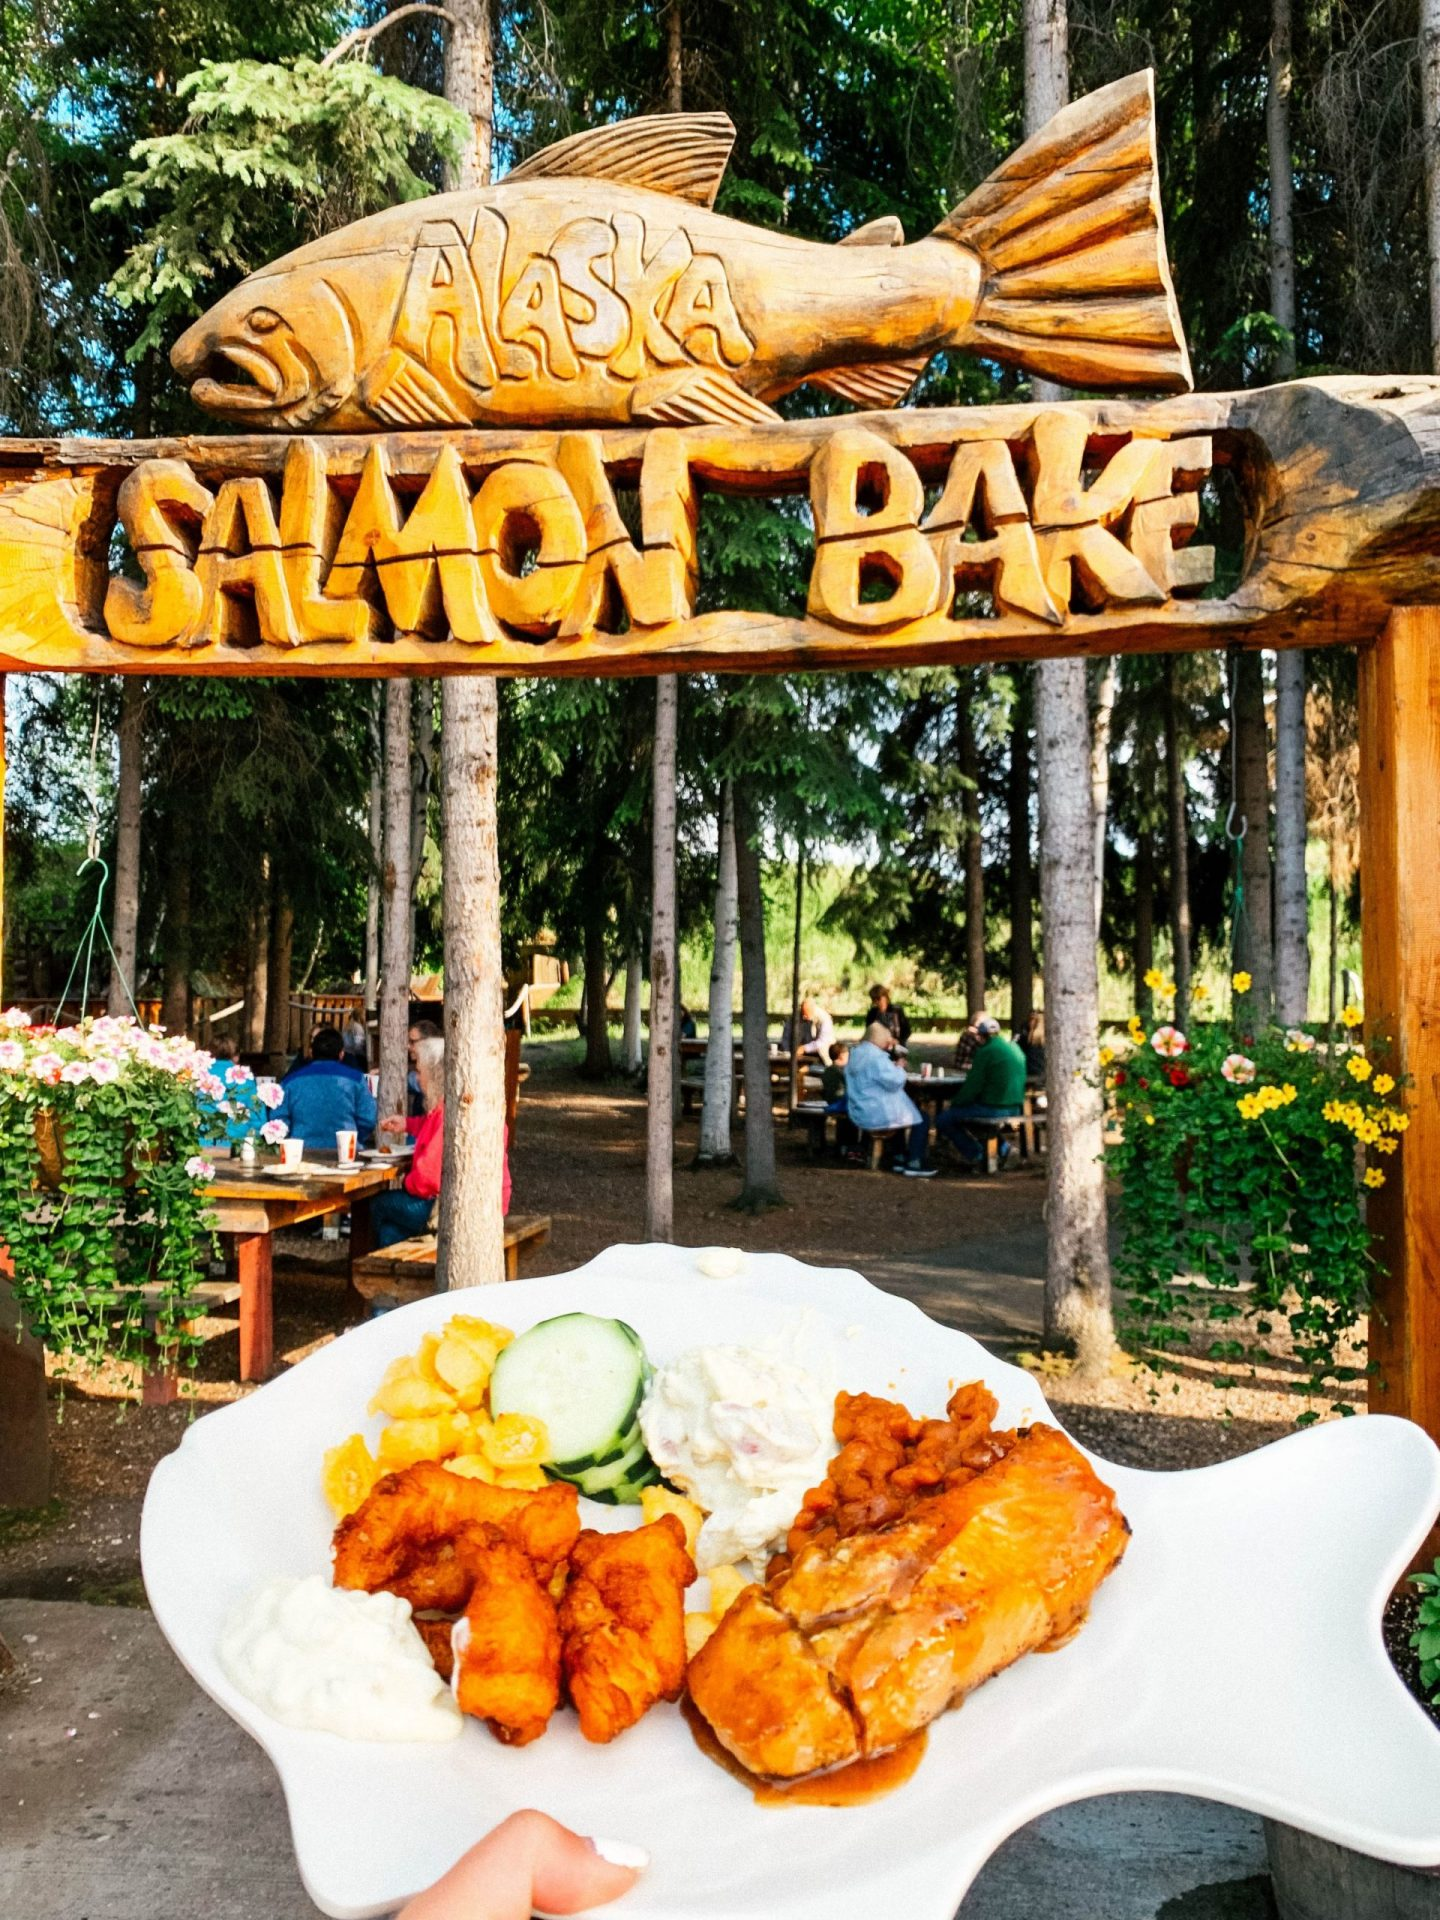 Pioneer Park is home to the Alaska Salmon Bake.